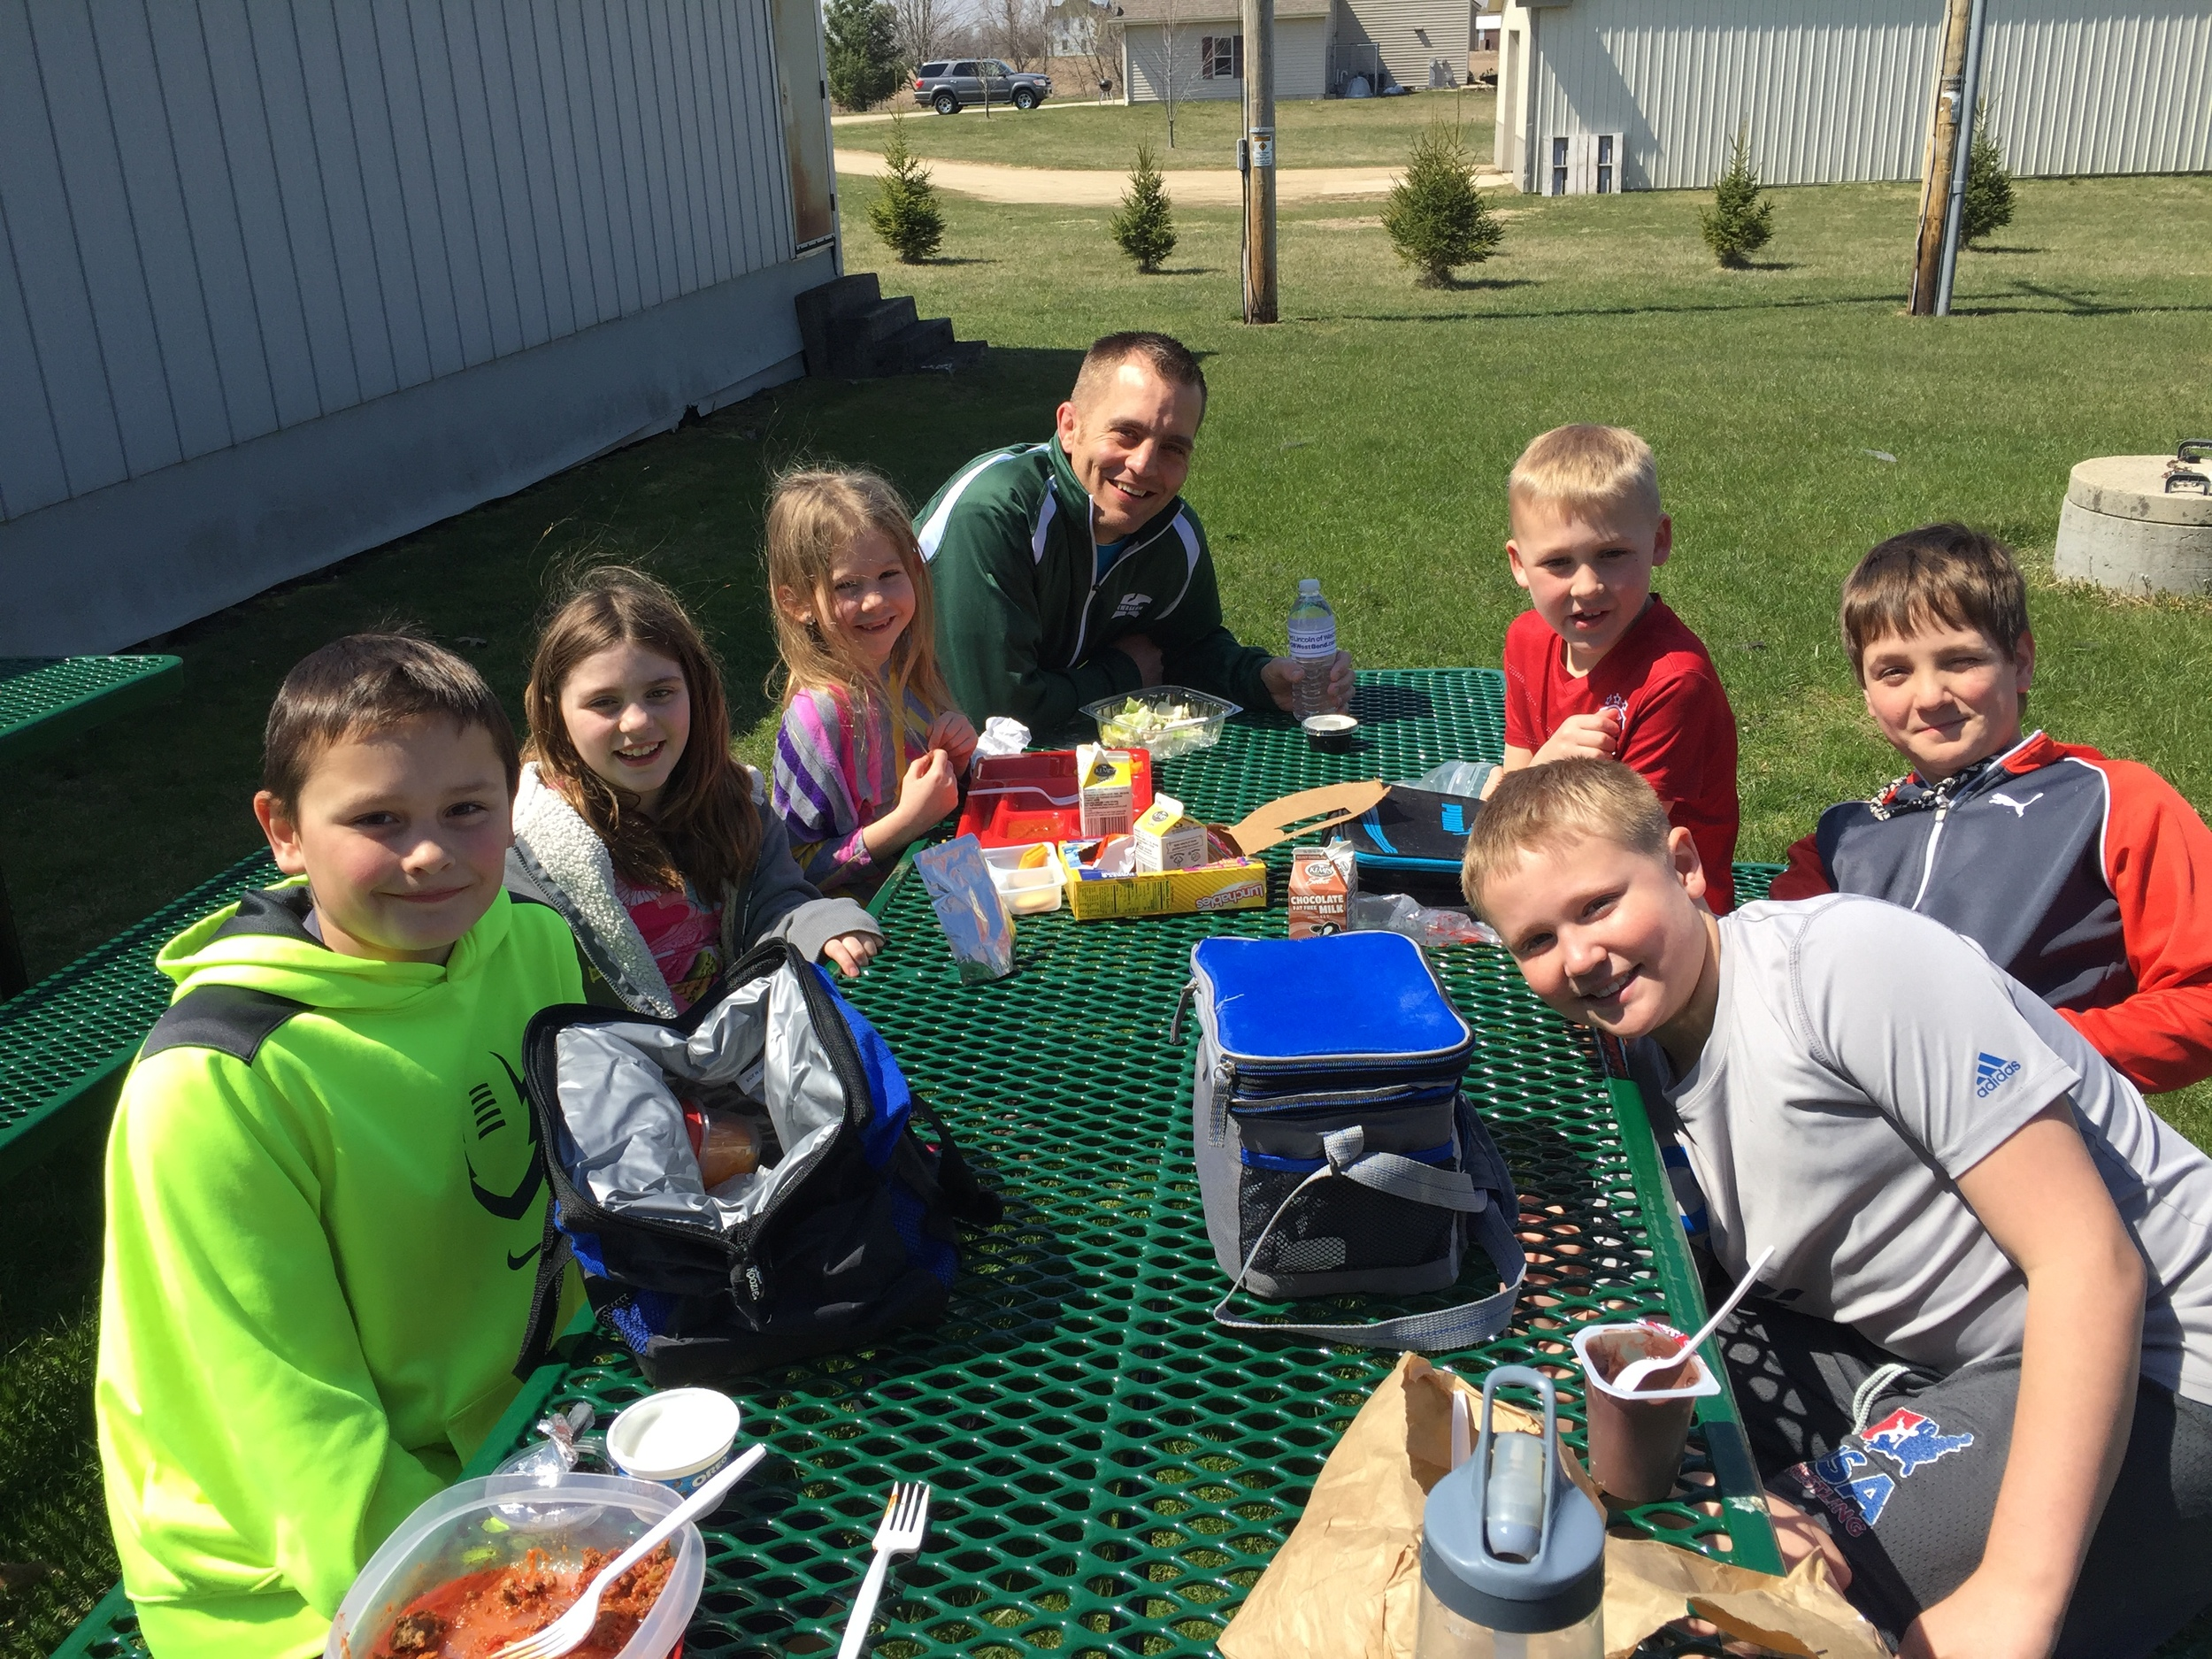 Mr. Dziedzic and the winners of this month's Respect Award eating lunch together outside today. Classroom teachers chose one student per grade level (K-5) to receive this award.